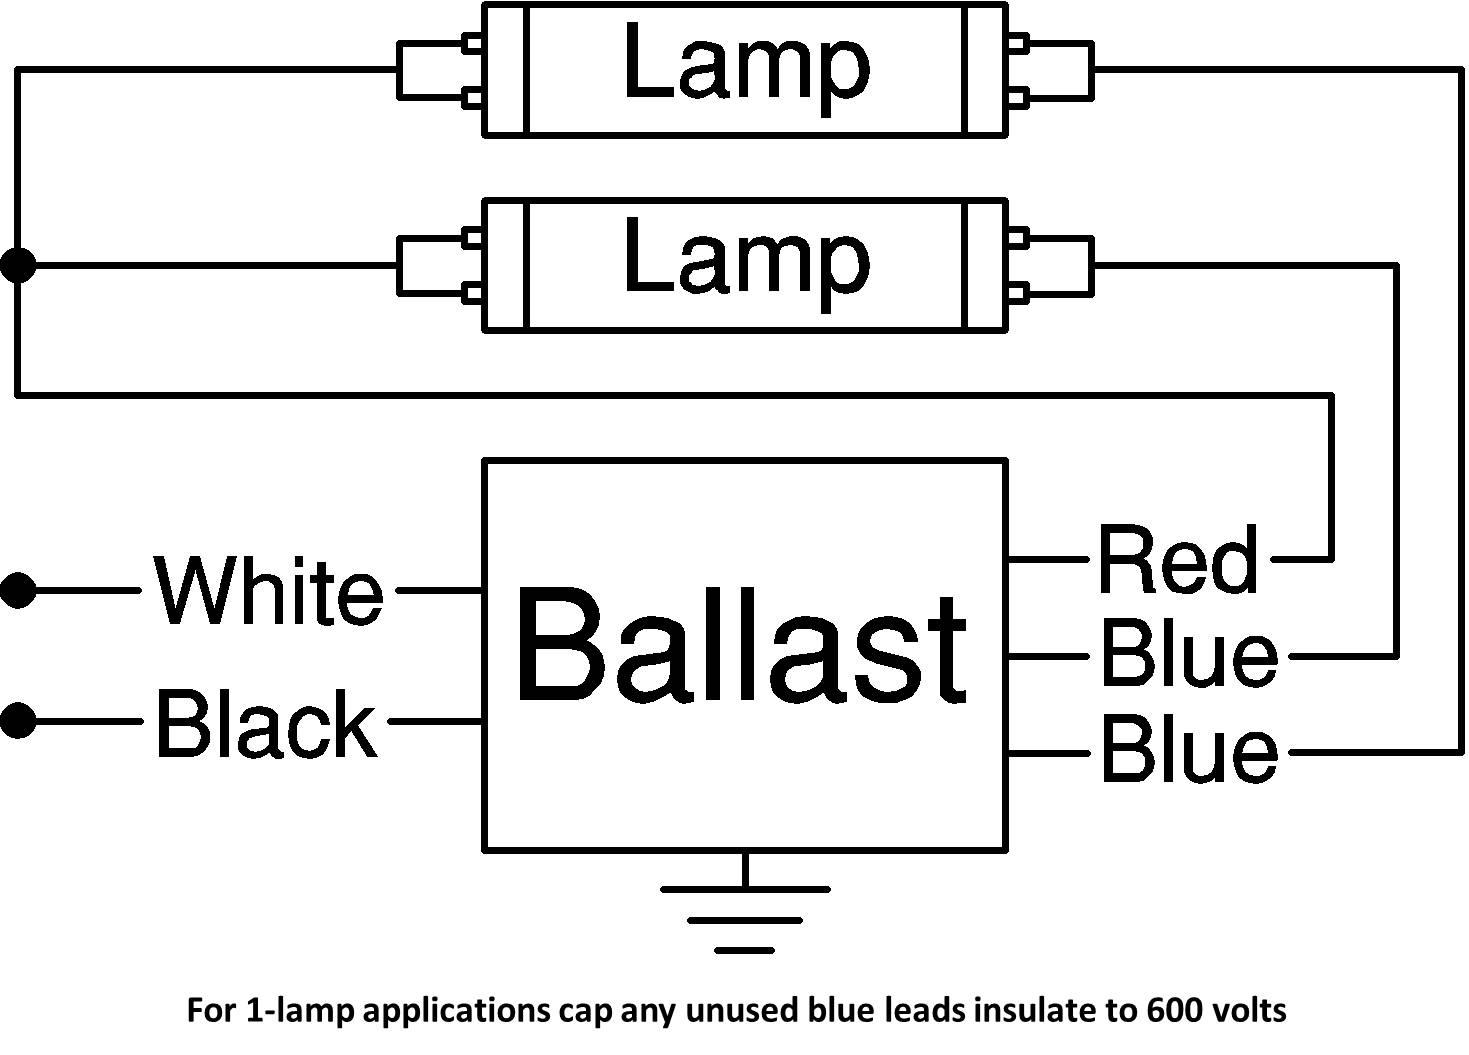 ballast wiring diagram t8 images bulb t8 ballast wiring ballast factor hpf fluorescent for 12 f32t8 linear lamps